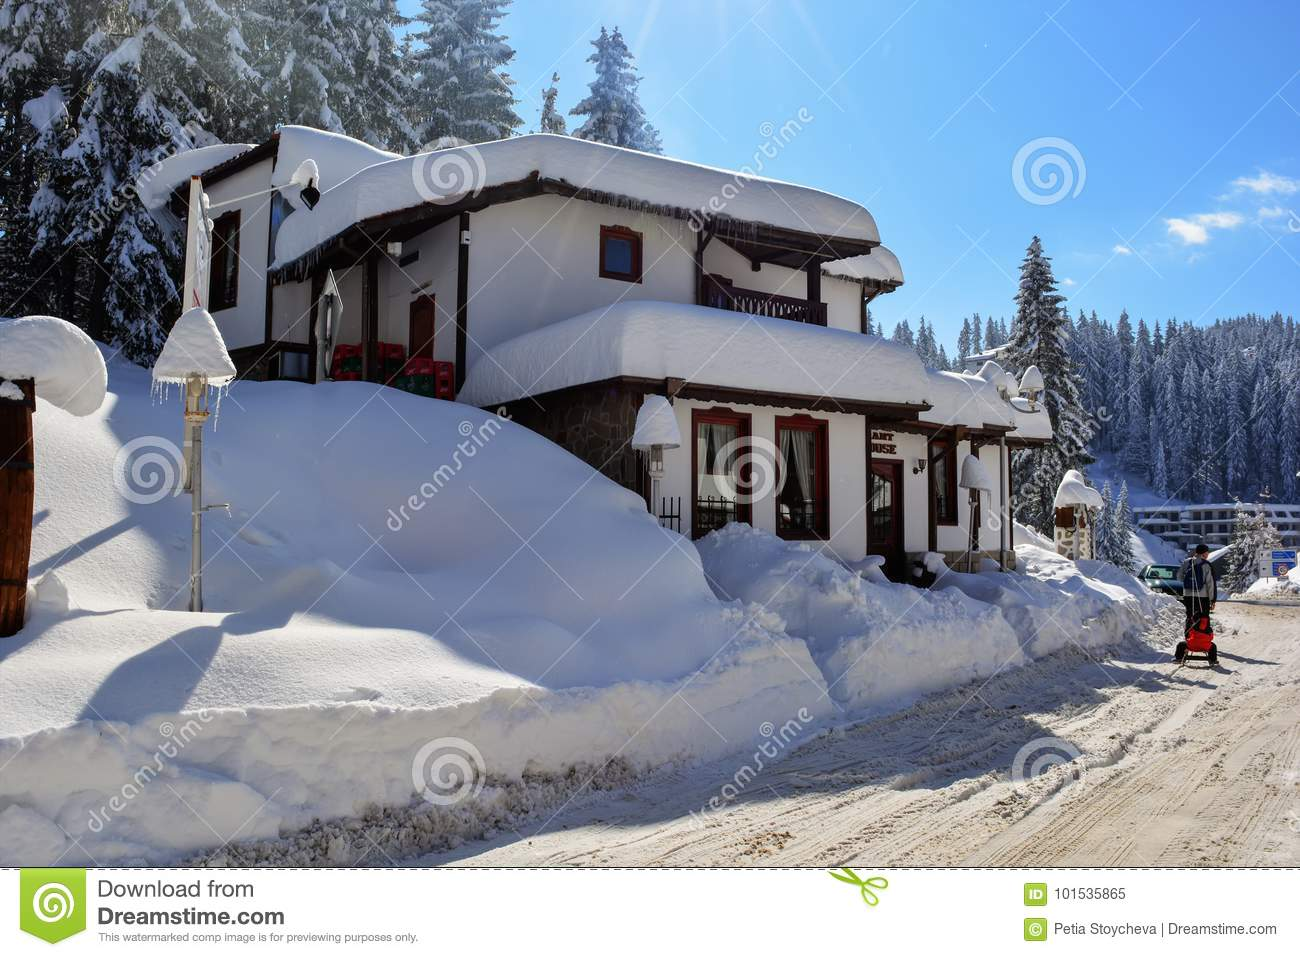 pamporovo, bulgaria - march 11, 2015 : winter resort with ski lift